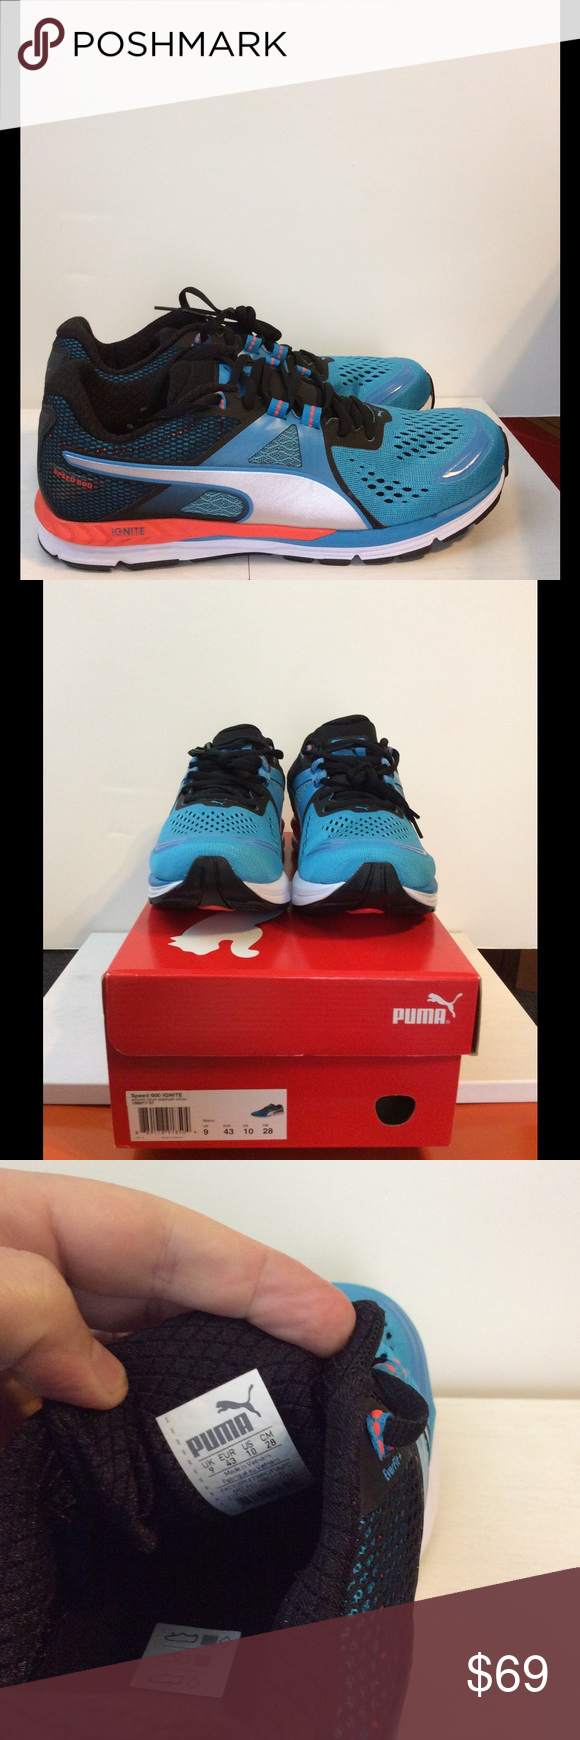 New PUMA Speed 600 IGNITE Running Shoes Blue 10 Make this yours! Puma New  in Box Speed 600 Ignite Running Shoe. The Measurements  Mens US 10 Eur 43  Shipping ... 36c00b3c4